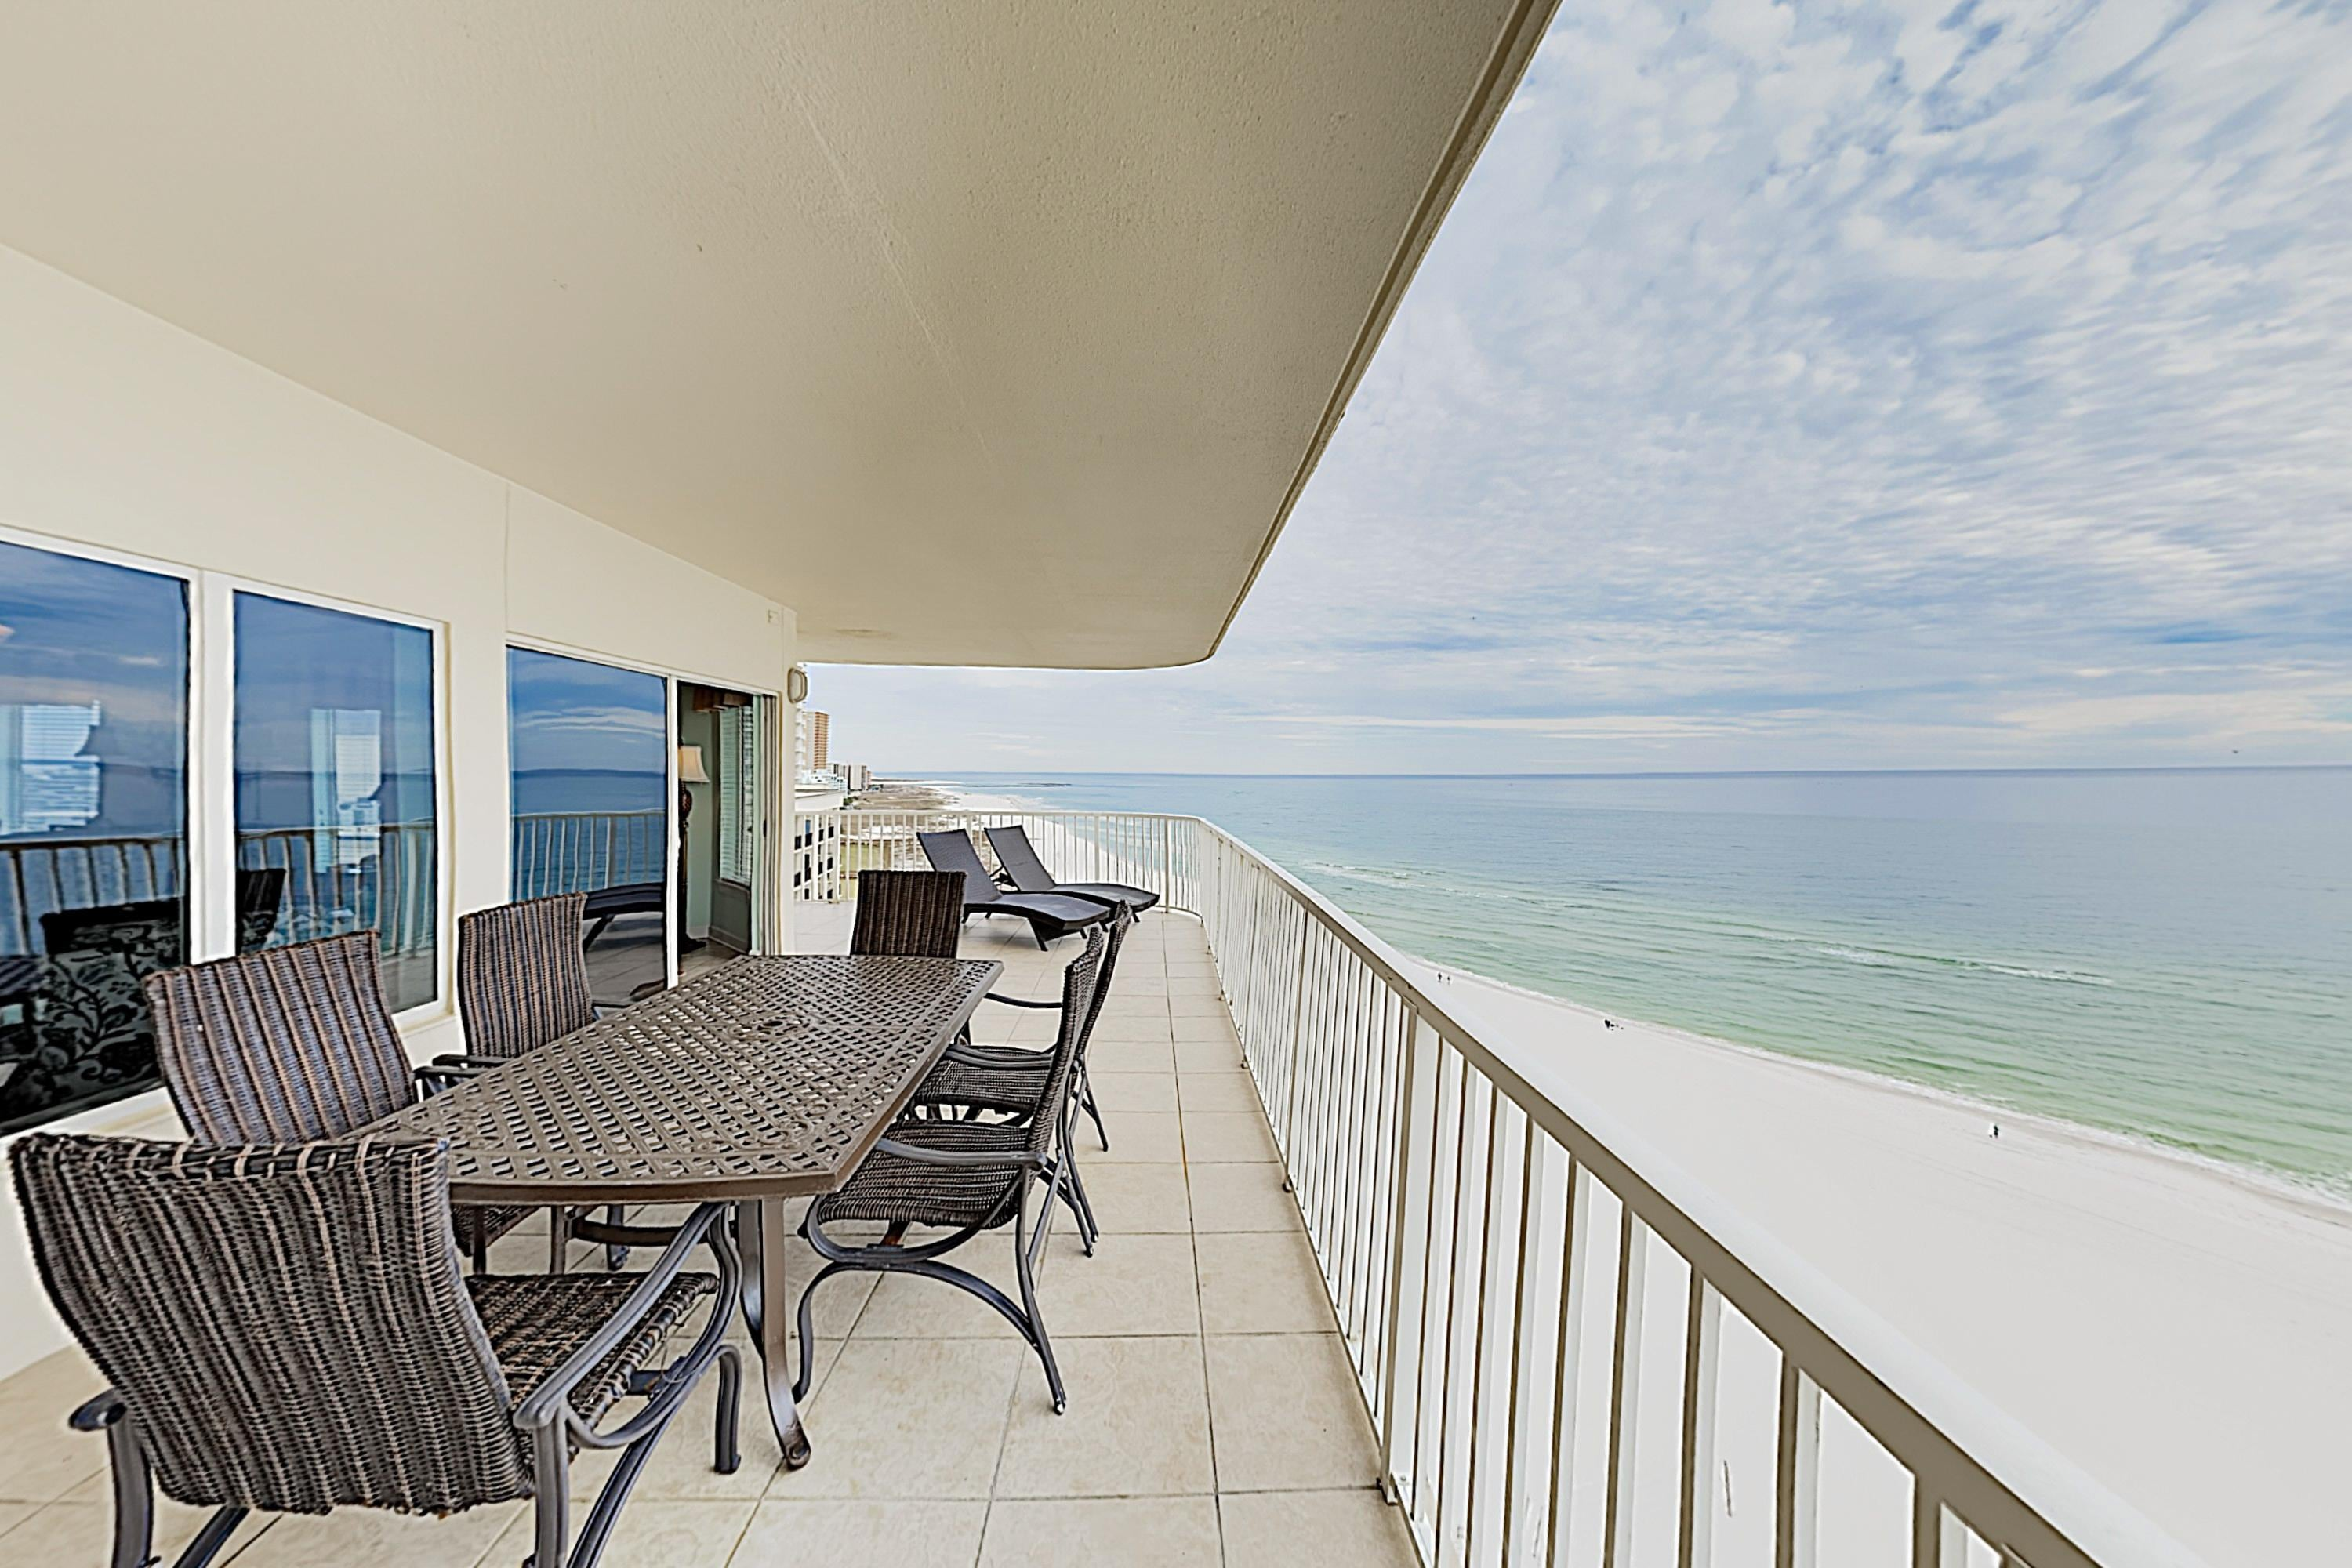 Welcome to Orange Beach! This Admiral's Quarters condo is professionally managed by TurnKey Vacation Rentals.